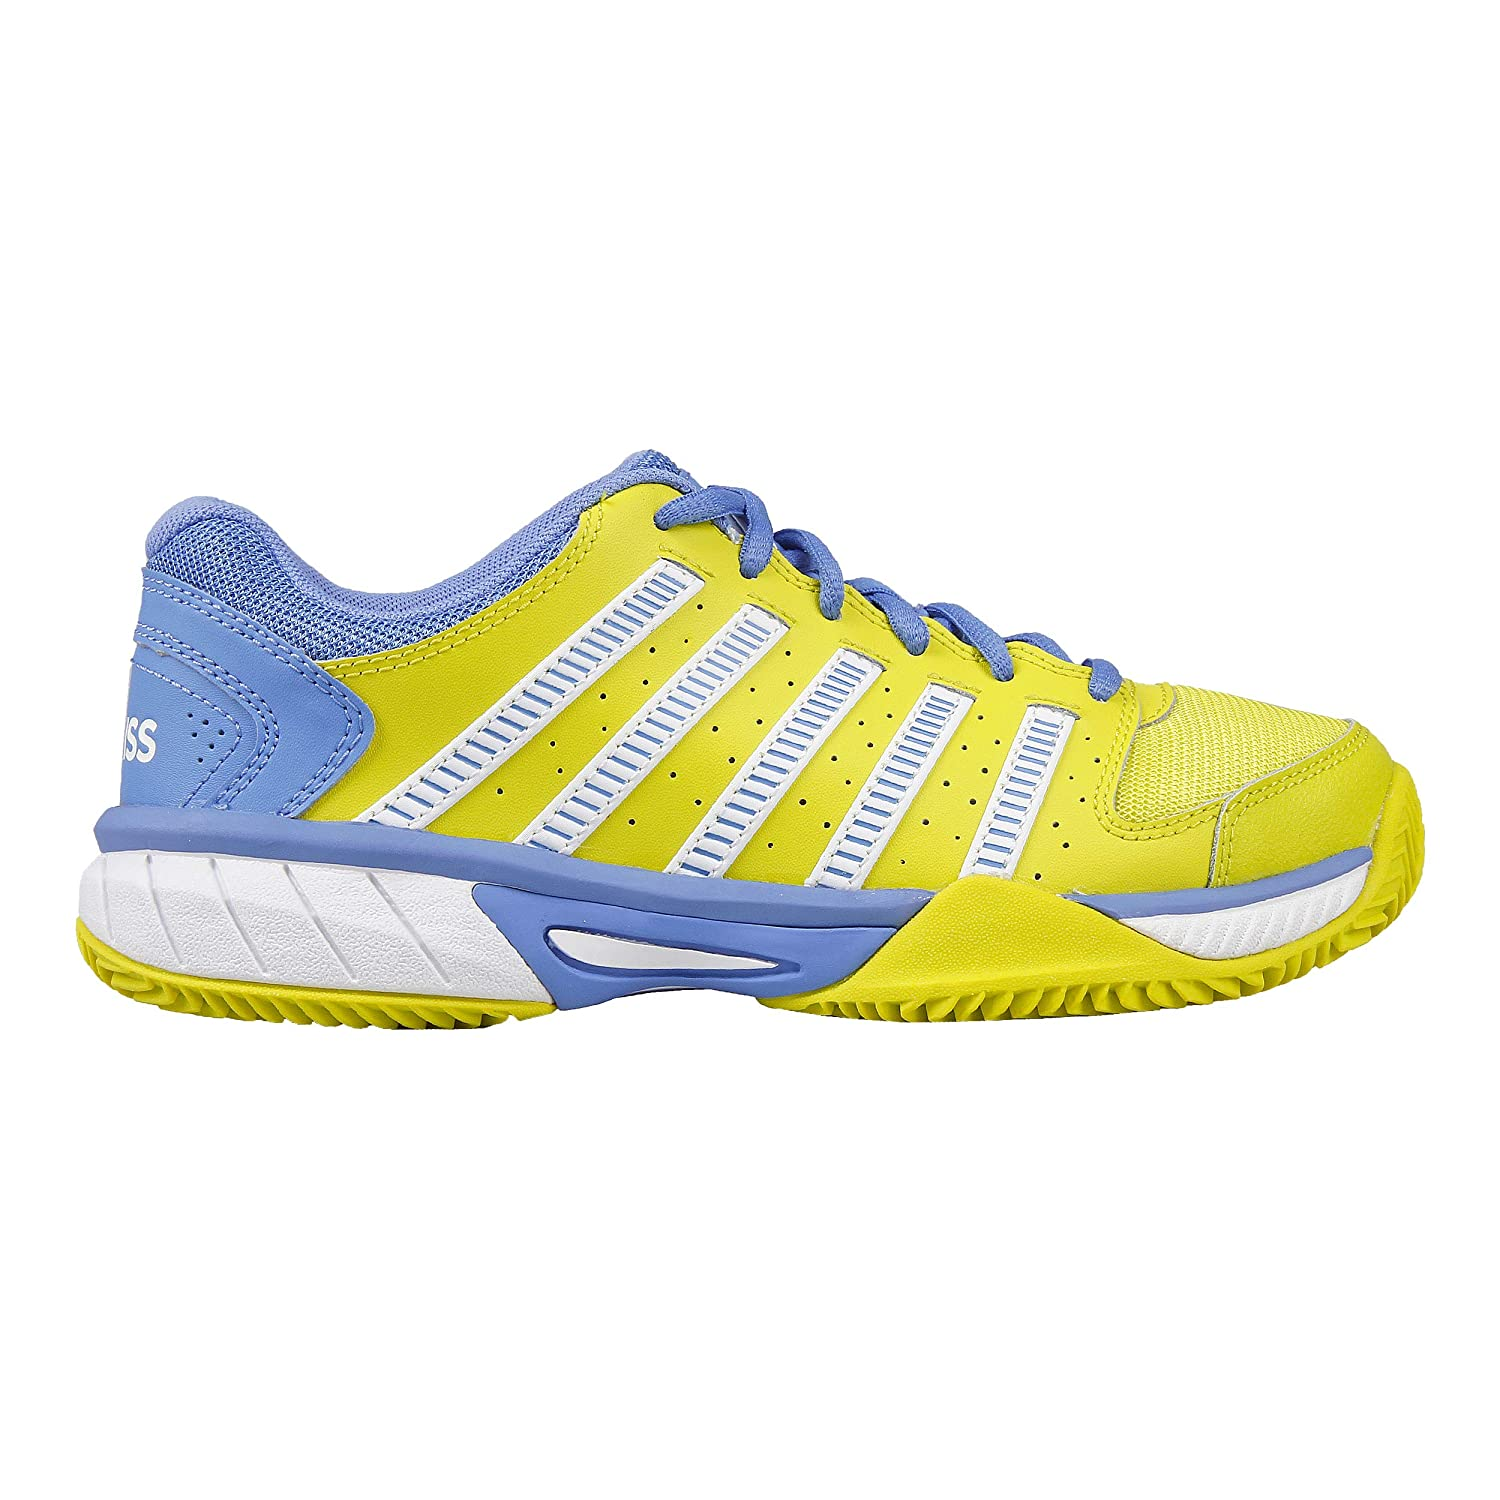 K-SWISS Zapatilla tenis/Padel Express Ltr Hb EUR 39: Amazon ...